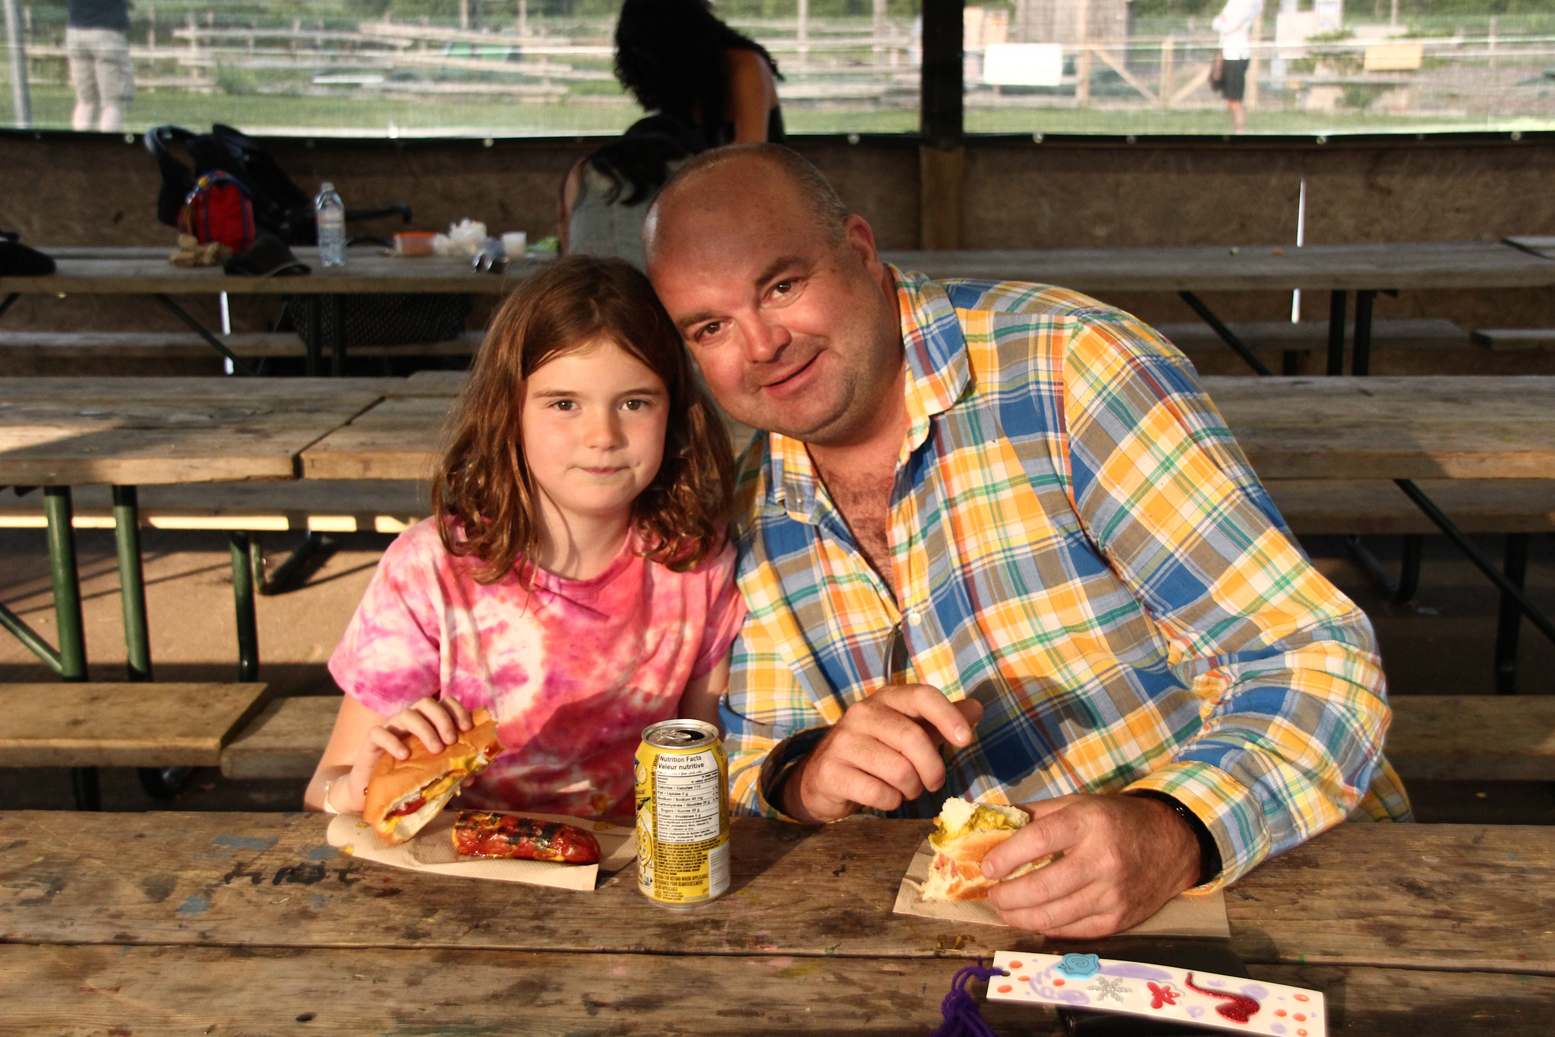 A father and daughter enjoy a hot dog together at Camp Robin Hood during one of our open house events where parents can see why kids think this is the best camp in the world!